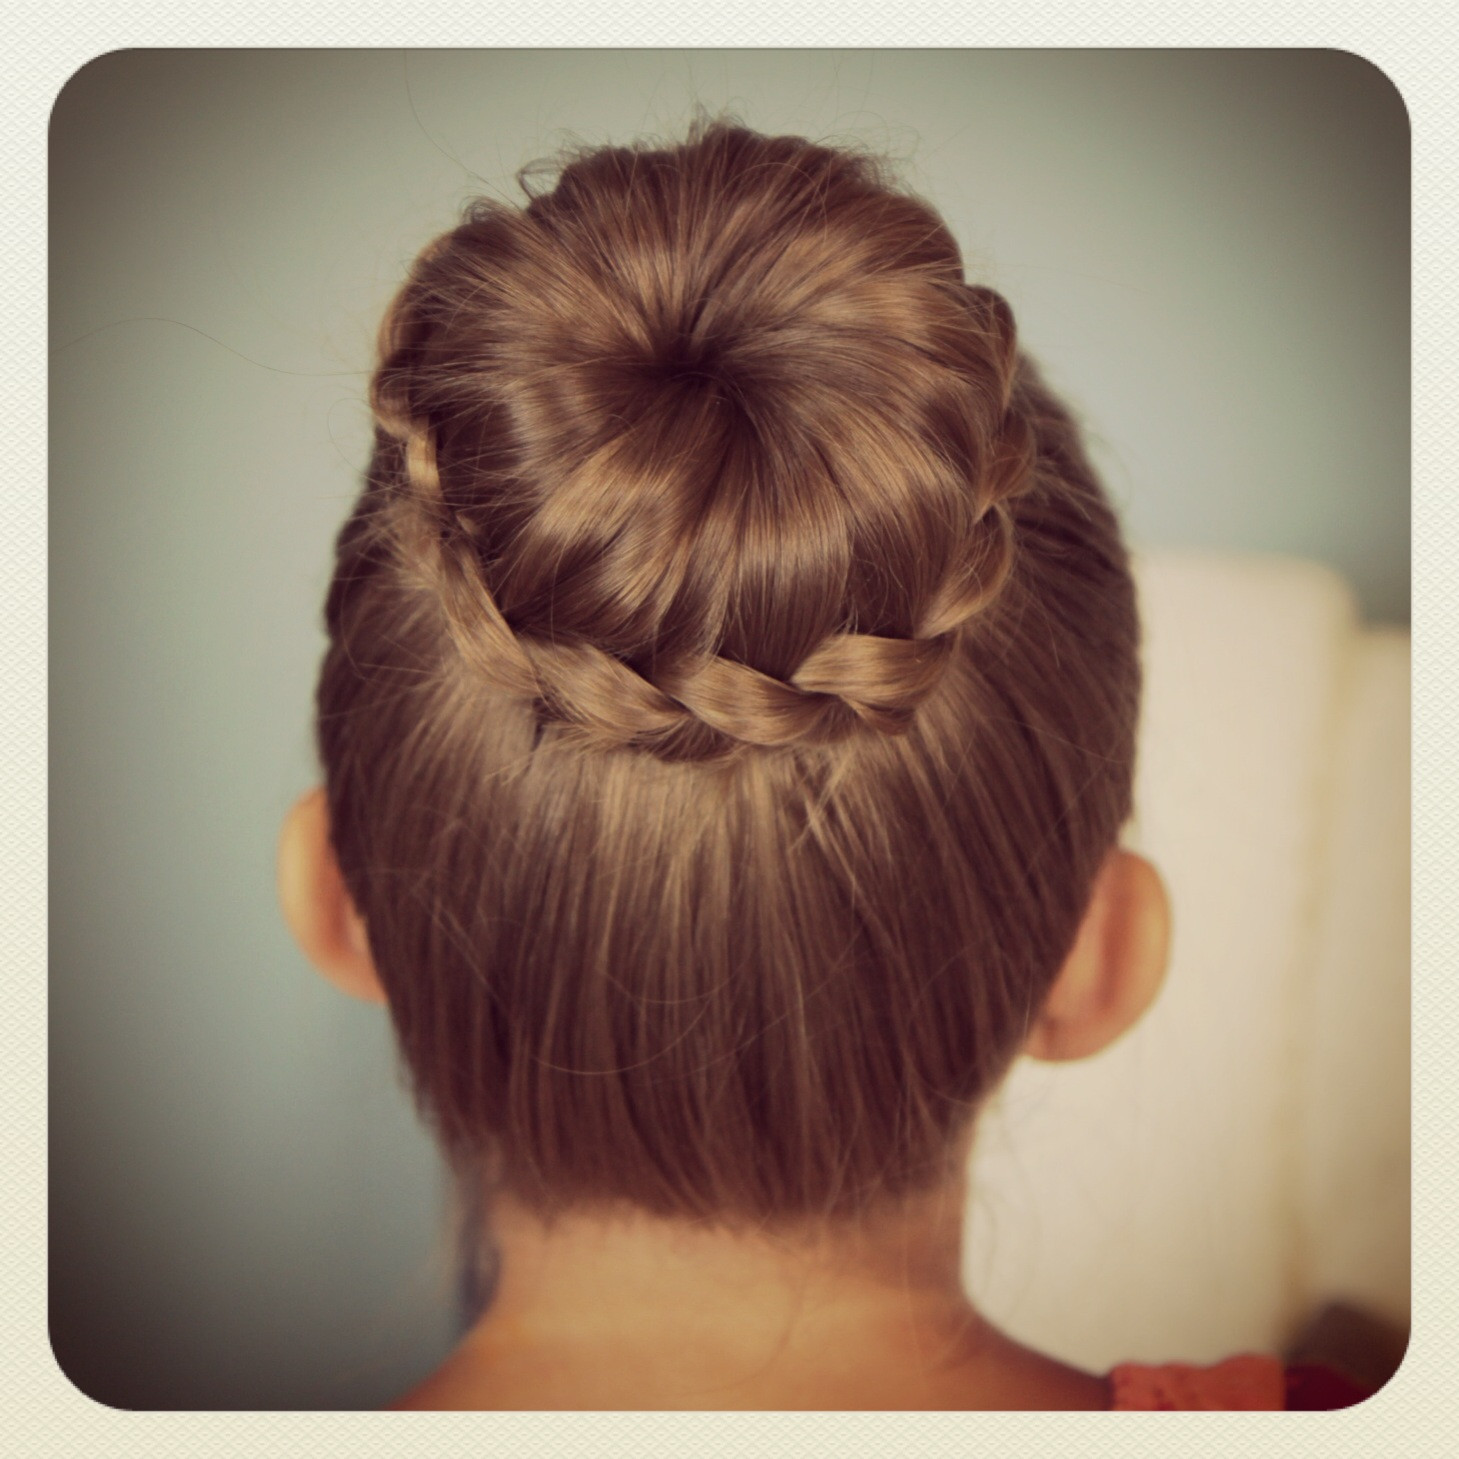 Best ideas about Bun Hairstyles For Girls . Save or Pin Lace Braided Bun Cute Updo Hairstyles Now.